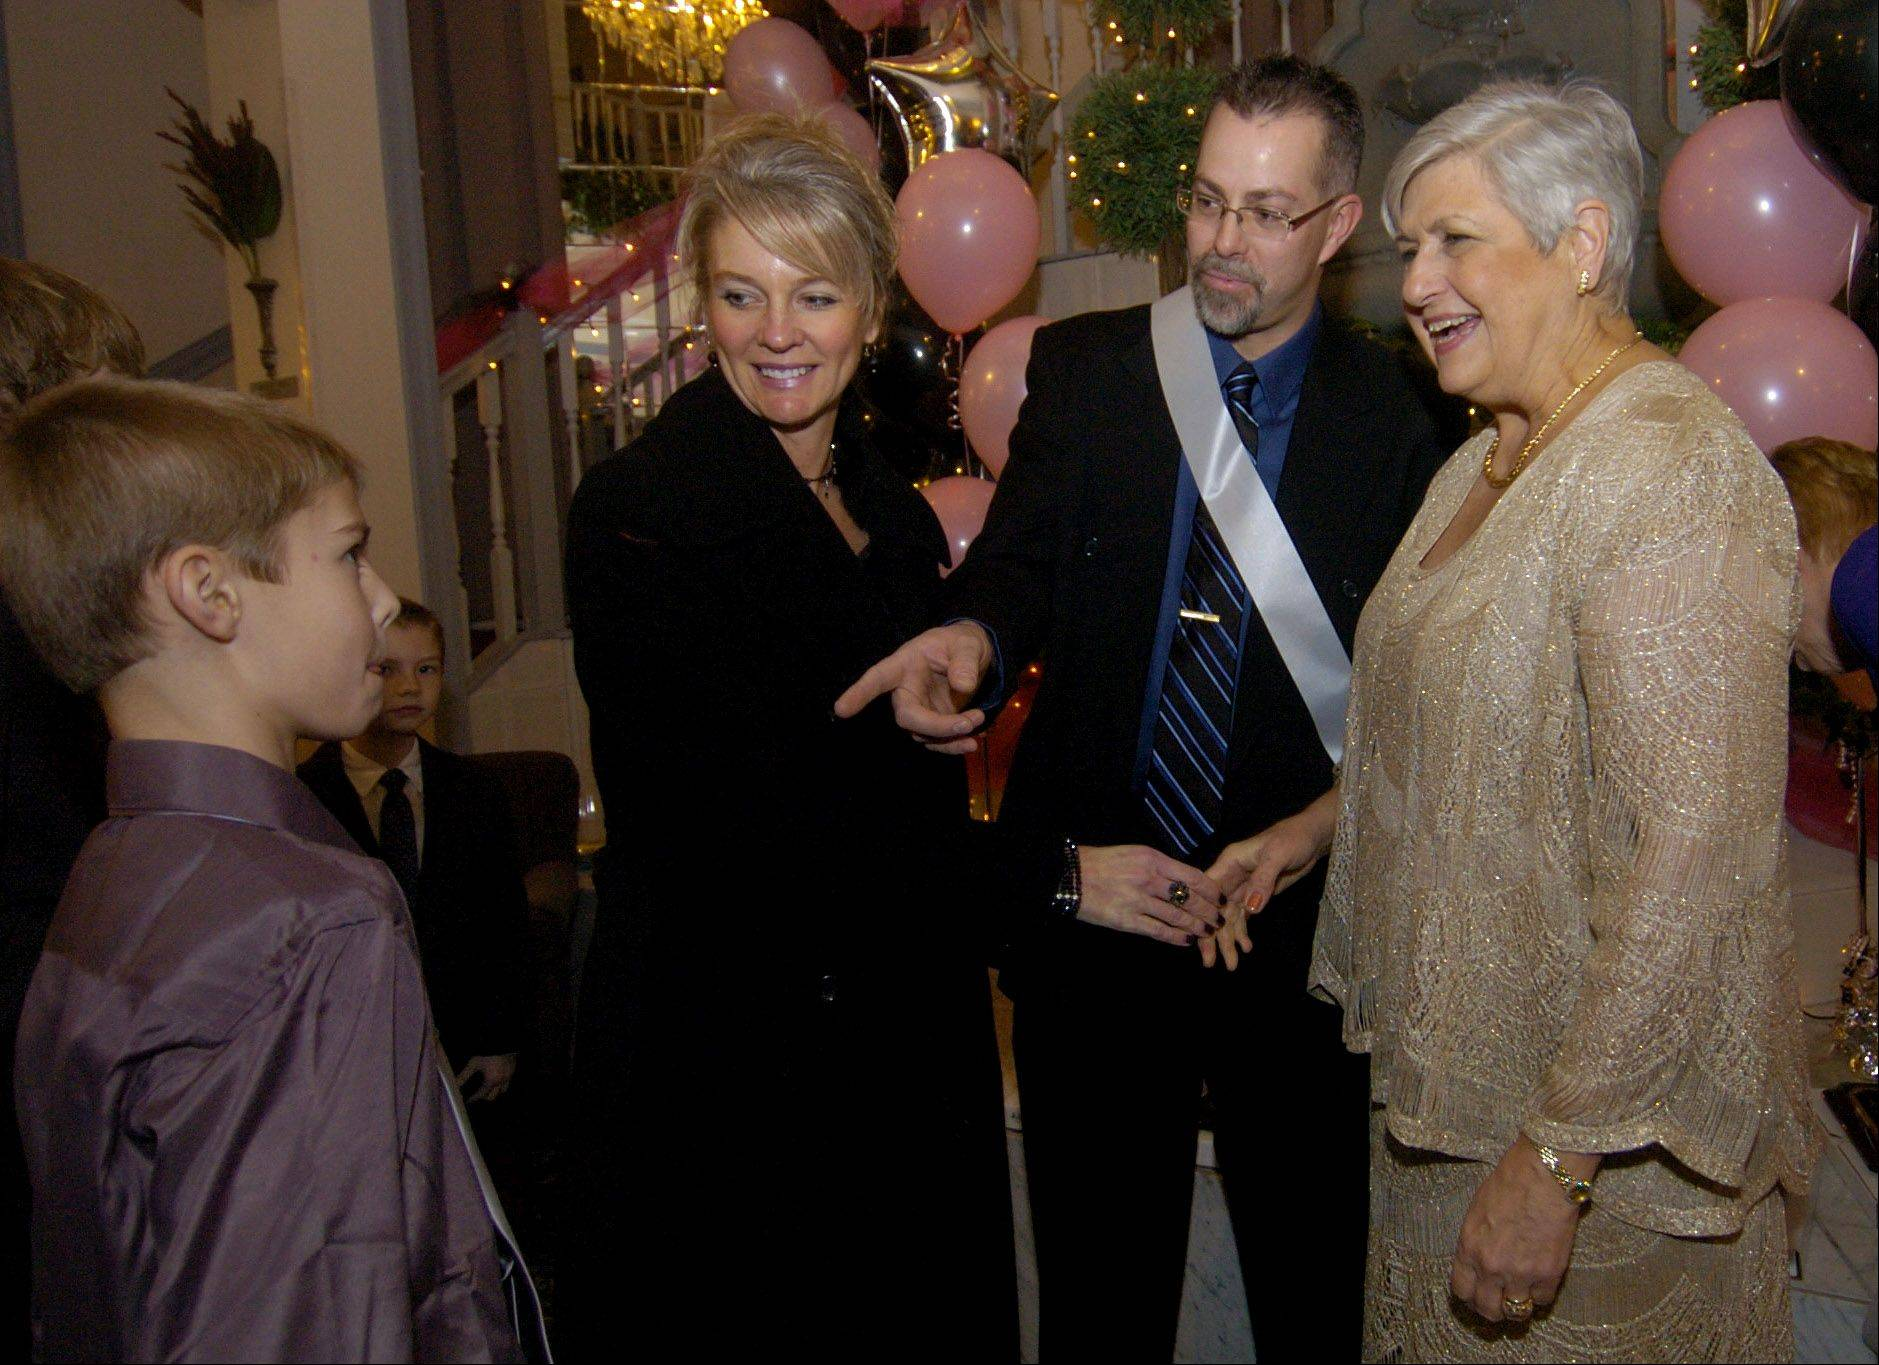 Mount Prospect Mayor Irvana Wilks, right, meets with resident Mike Jensen and his family during last year�s Celestial Celebration banquet. This year�s event, highlighted by the awarding of �Shining Star� honors, takes place Feb. 1.